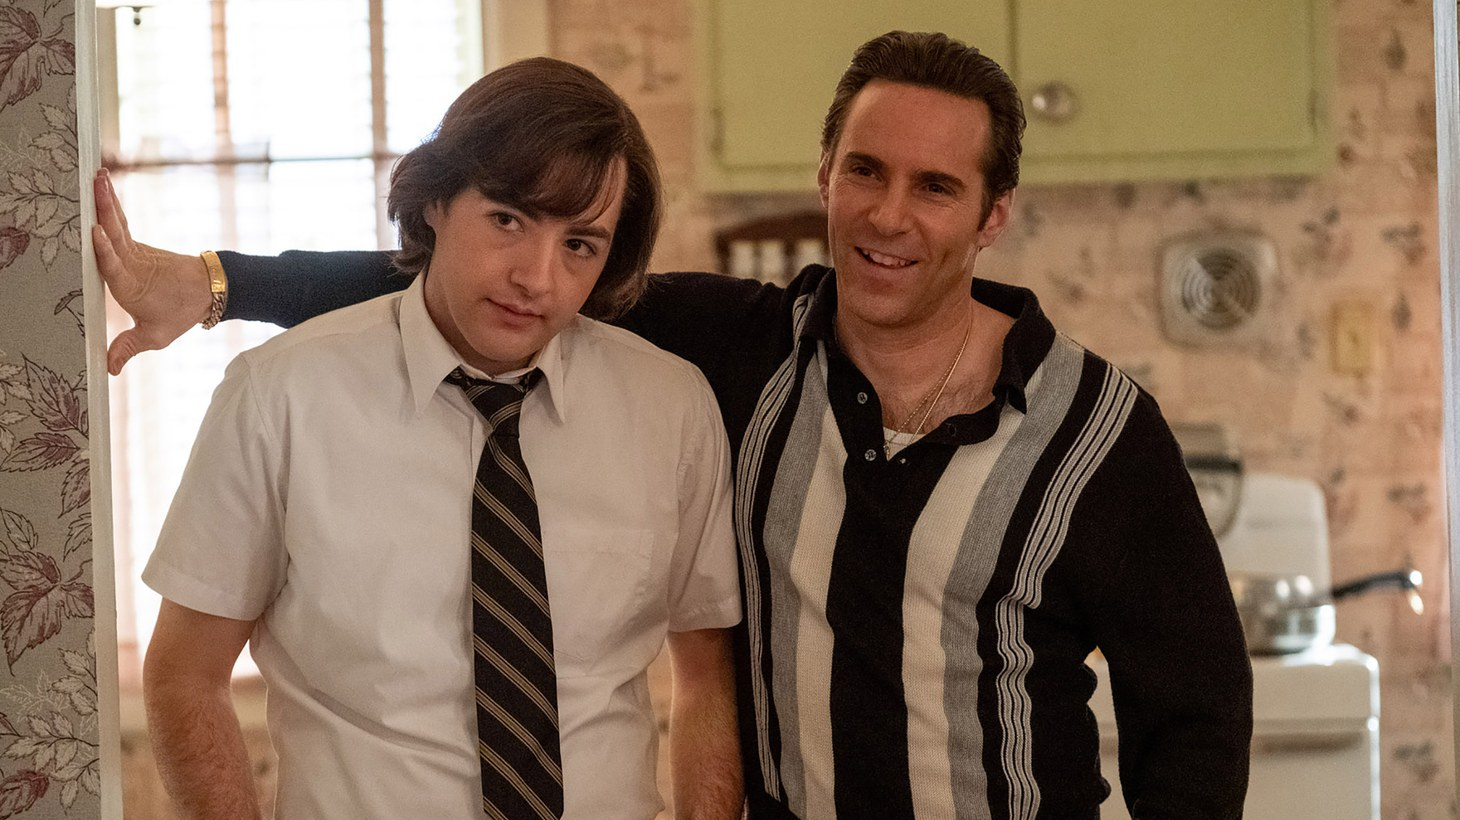 """Michael Gandolfini (left) plays a teenage Tony Soprano, and Alessandro Nivola is his mentor Dickie Moltisanti in the new film """"The Many Saints of Newark."""" Moltisanti is the lead character, who is """"not only the master of his own destiny, but he is complicit in his own failures,"""" says writer Matt Zoller Seitz."""